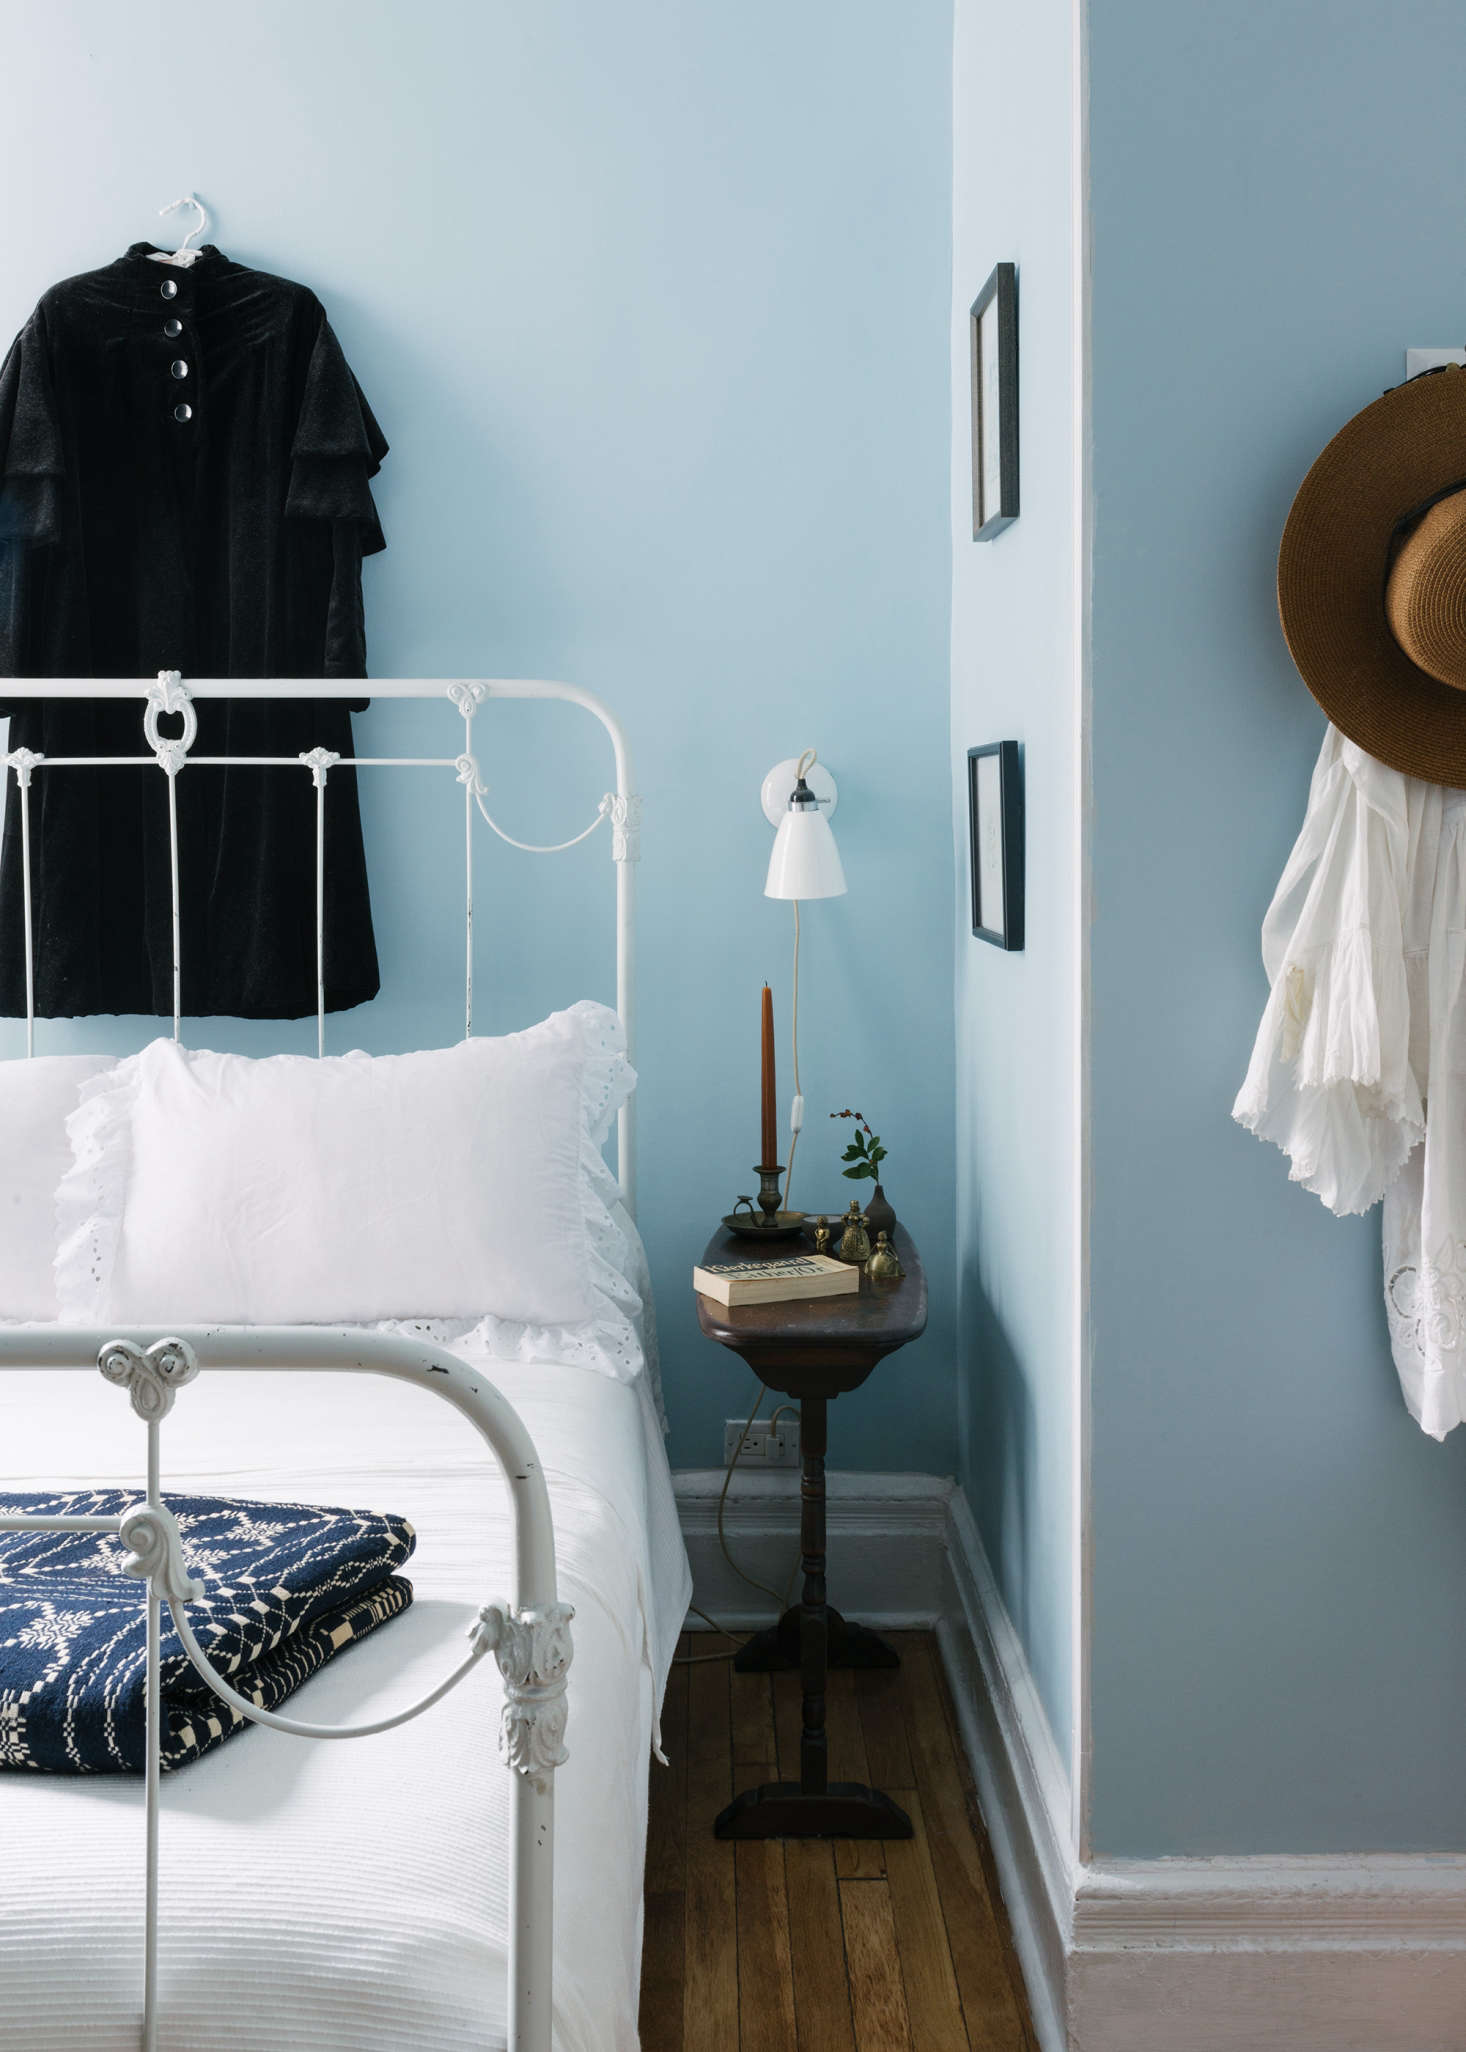 """I always wanted a Wedgwood Blue bedroom, but in reality, Wedgwood Blue proper was a little too dark for this room so we went with Farrow & Ball Parma Gray,"" she says. ""It's a soothing color and reminds me of the last stanza of ""High Windows""  and Marie Antoinette all at once!"" The wrought iron bed frame is from a Goodwill in New Jersey with Stonewashed Belgian Linen bedding from Restoration Hardware. Behind the bed is a velvet overcoat from Sandeep's grandmother: ""very austere, as I believe she was."""